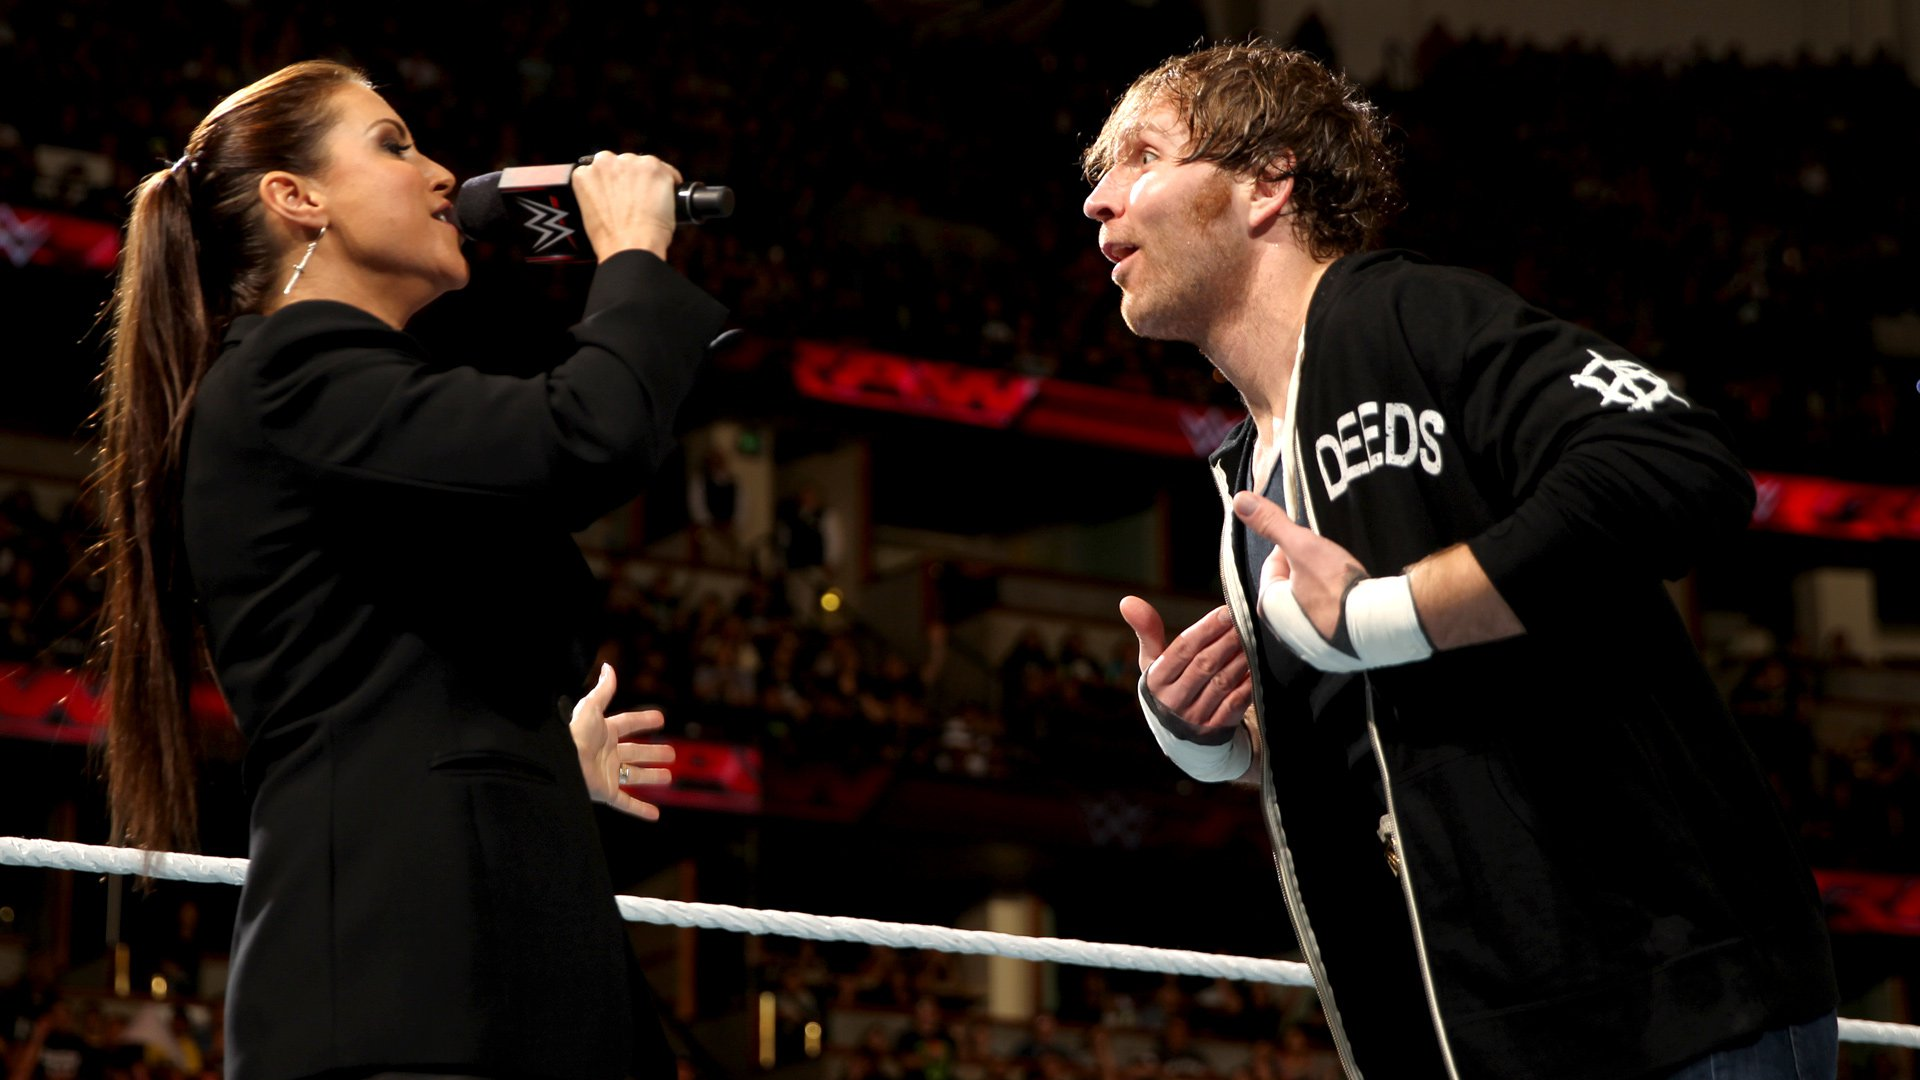 Stephanie McMahon arrives and grants Ambrose his wish in the form of a Fatal 5-Way for the Intercontinental Championship.